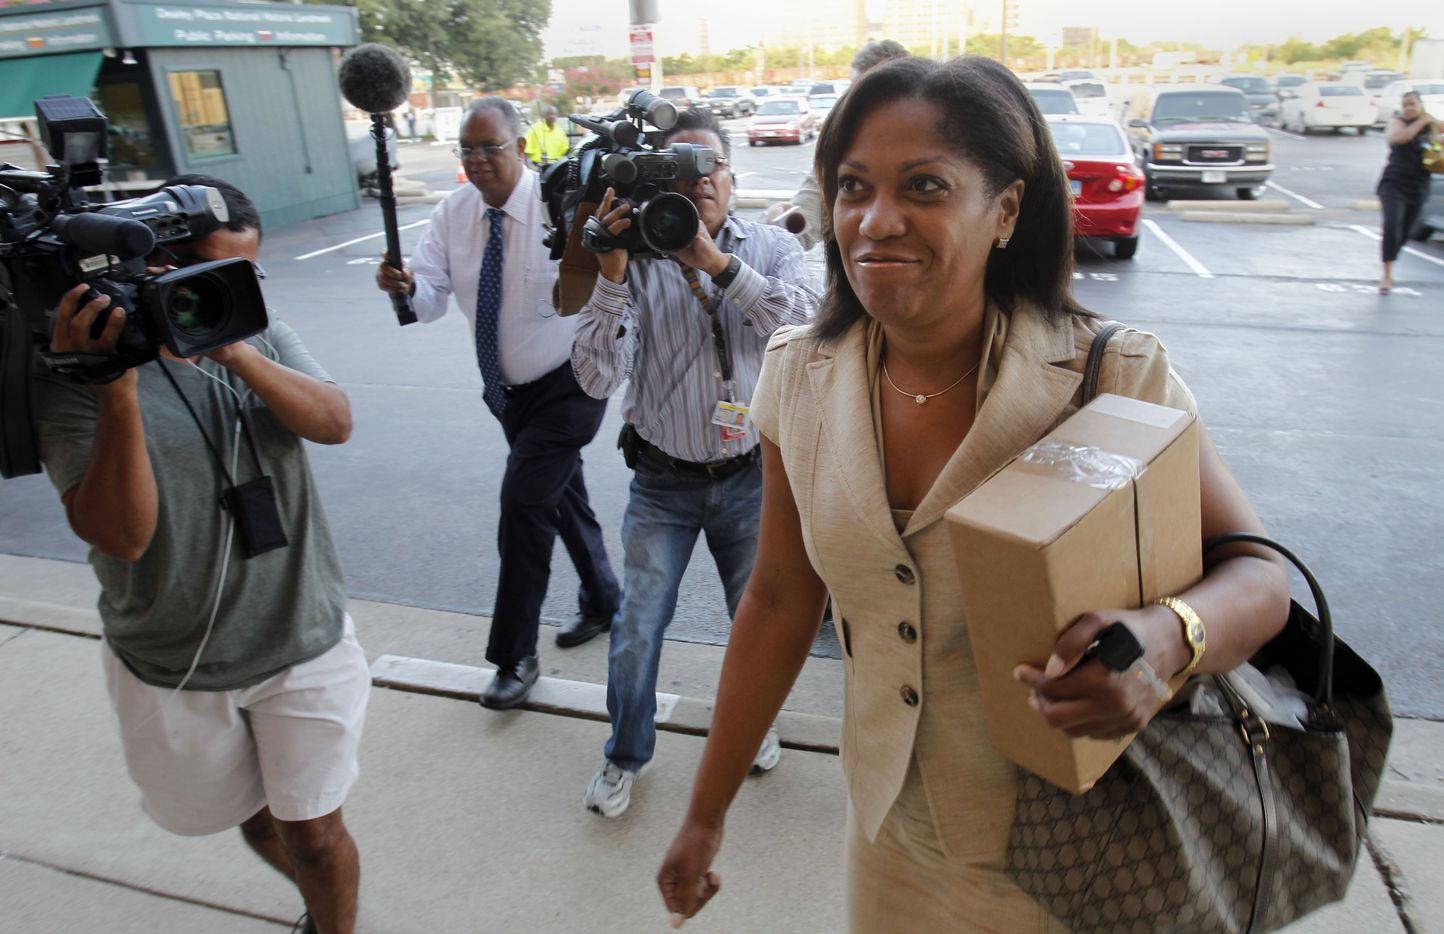 """Dapheny Fain, top assistant to Dallas County commissioner John Wiley Price arrives at the Dallas County Administration building in June, 2011. Price vowed at the time that it would be """"county business as usual,"""" as he carried on his duties under the cloud of an FBI investigation."""